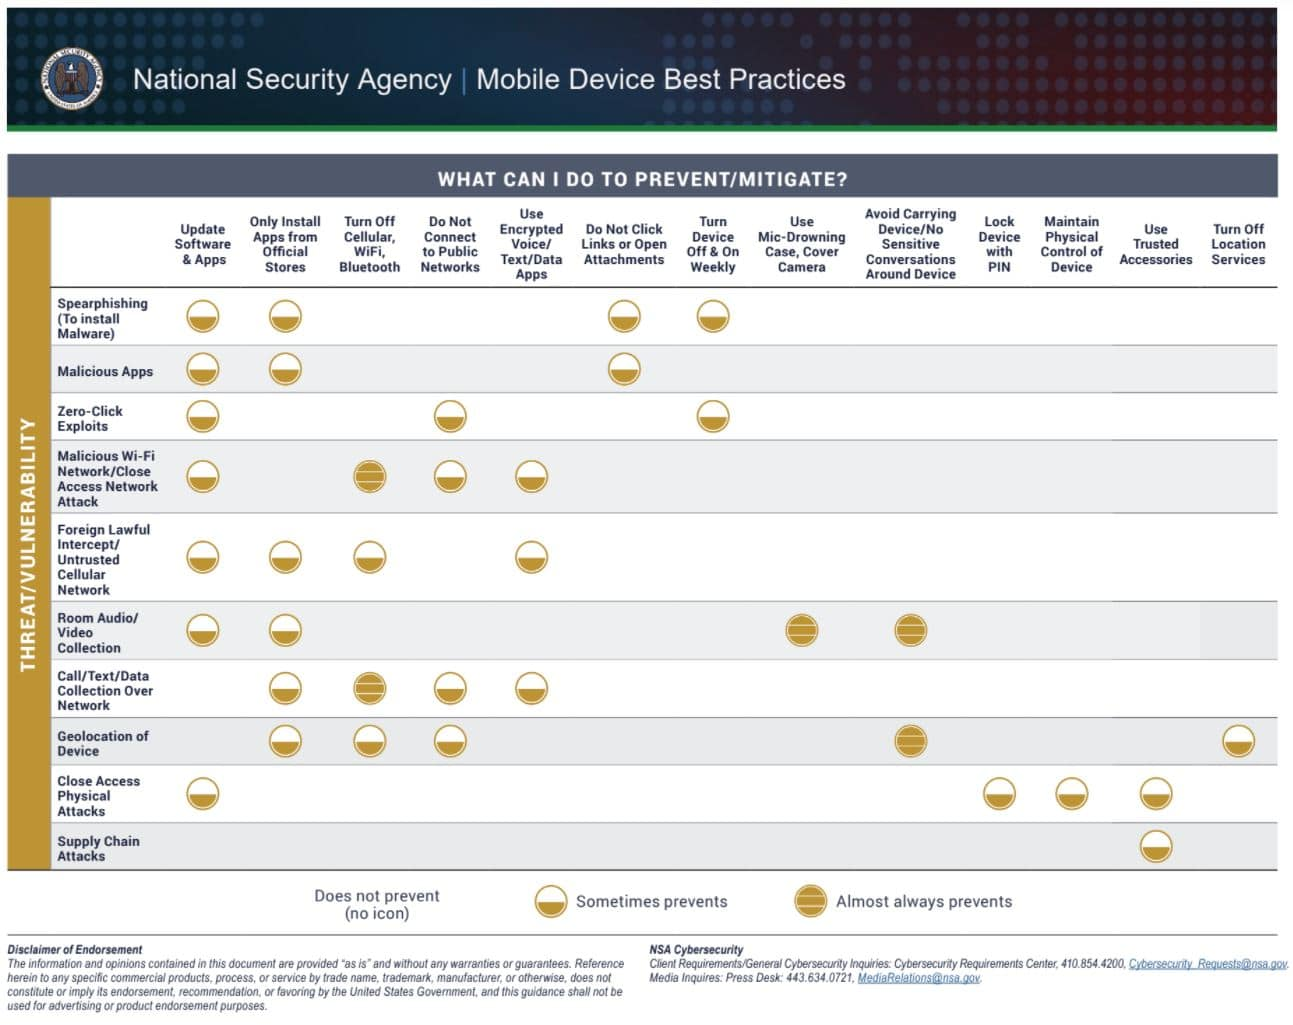 NSA Mobile Device Best Practices